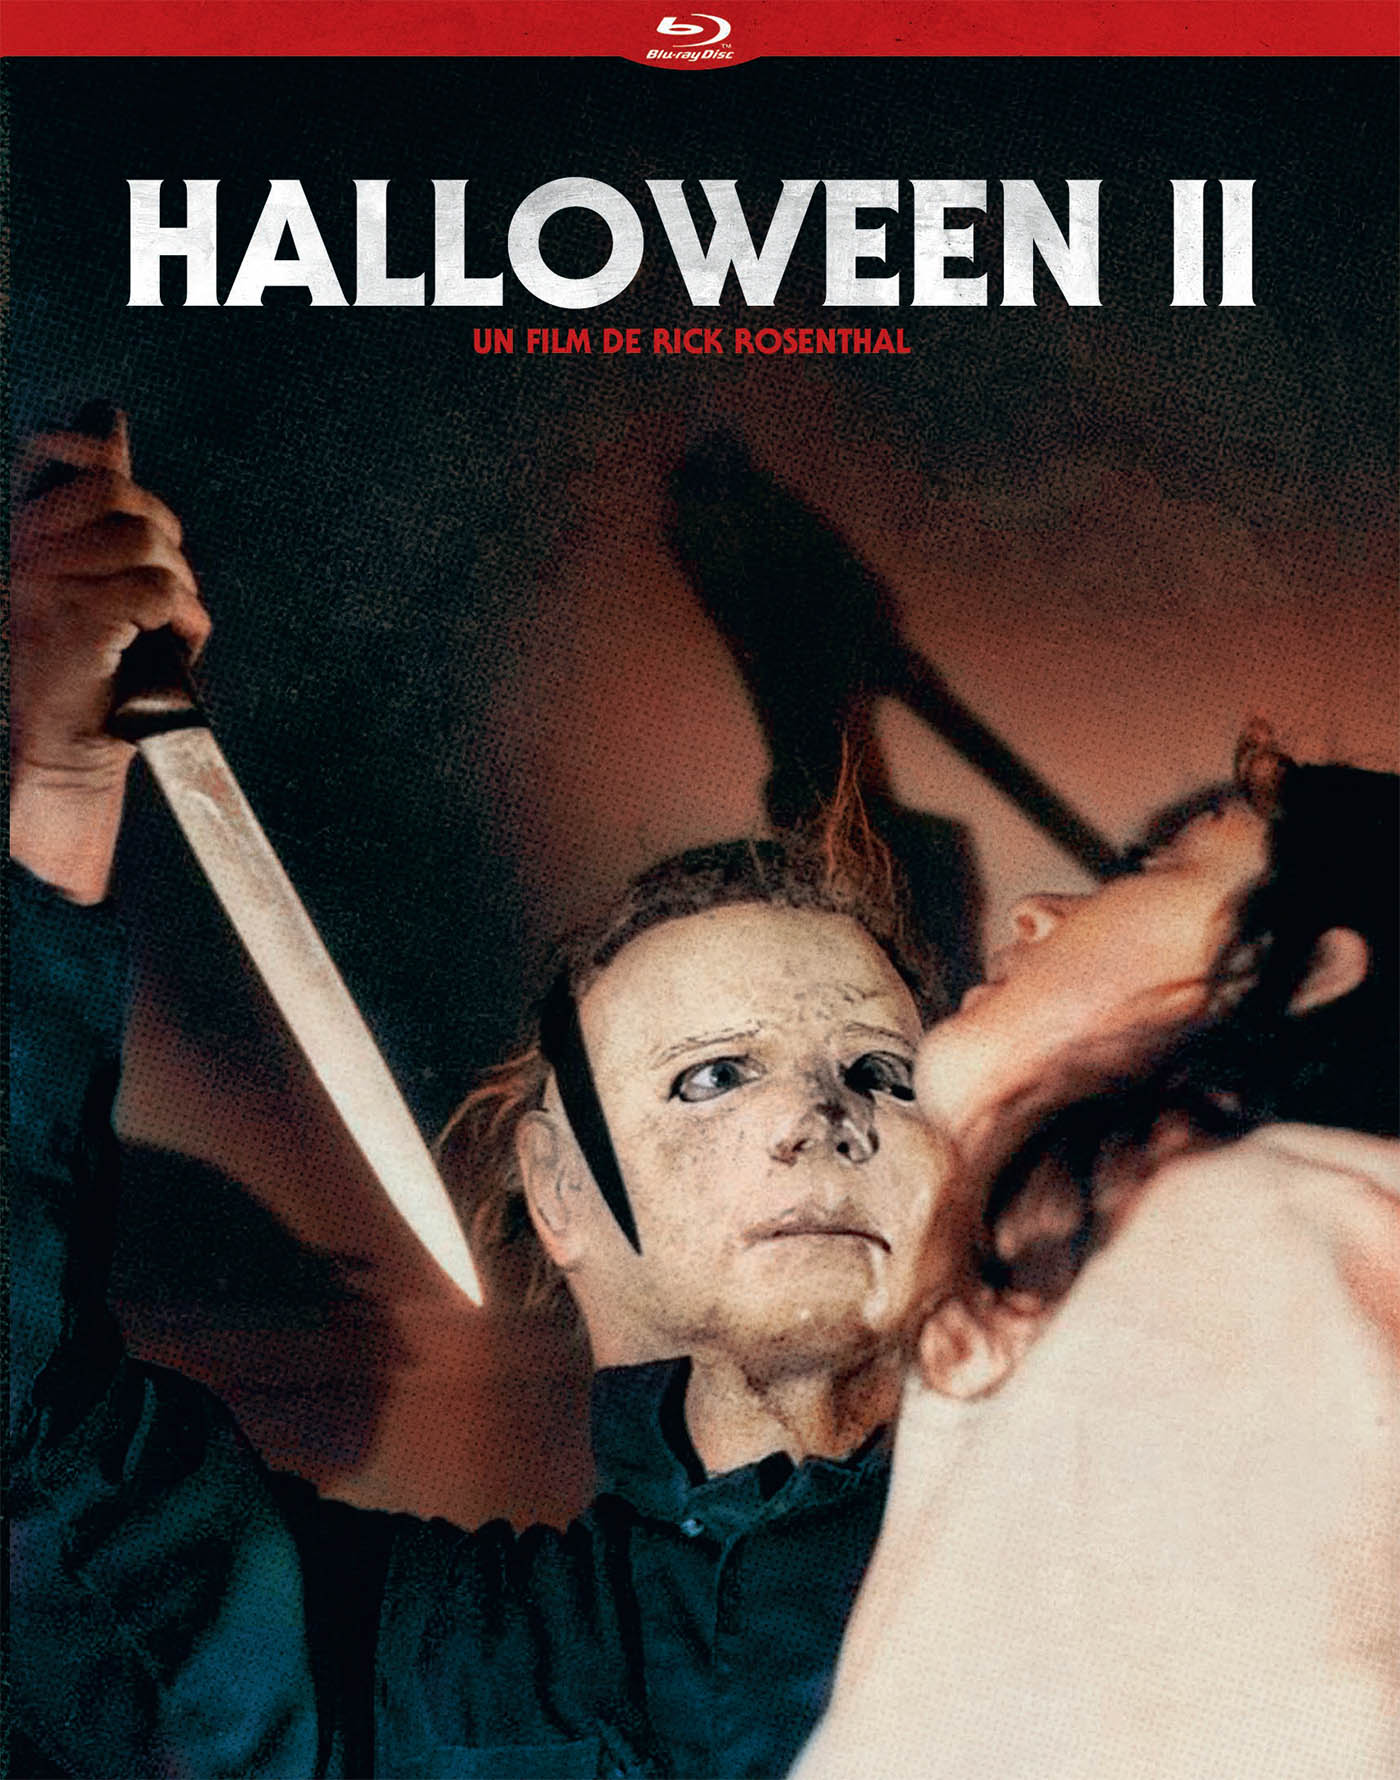 Jaquette blu-ray d'Halloween 2 (éditions du chat qui fume)